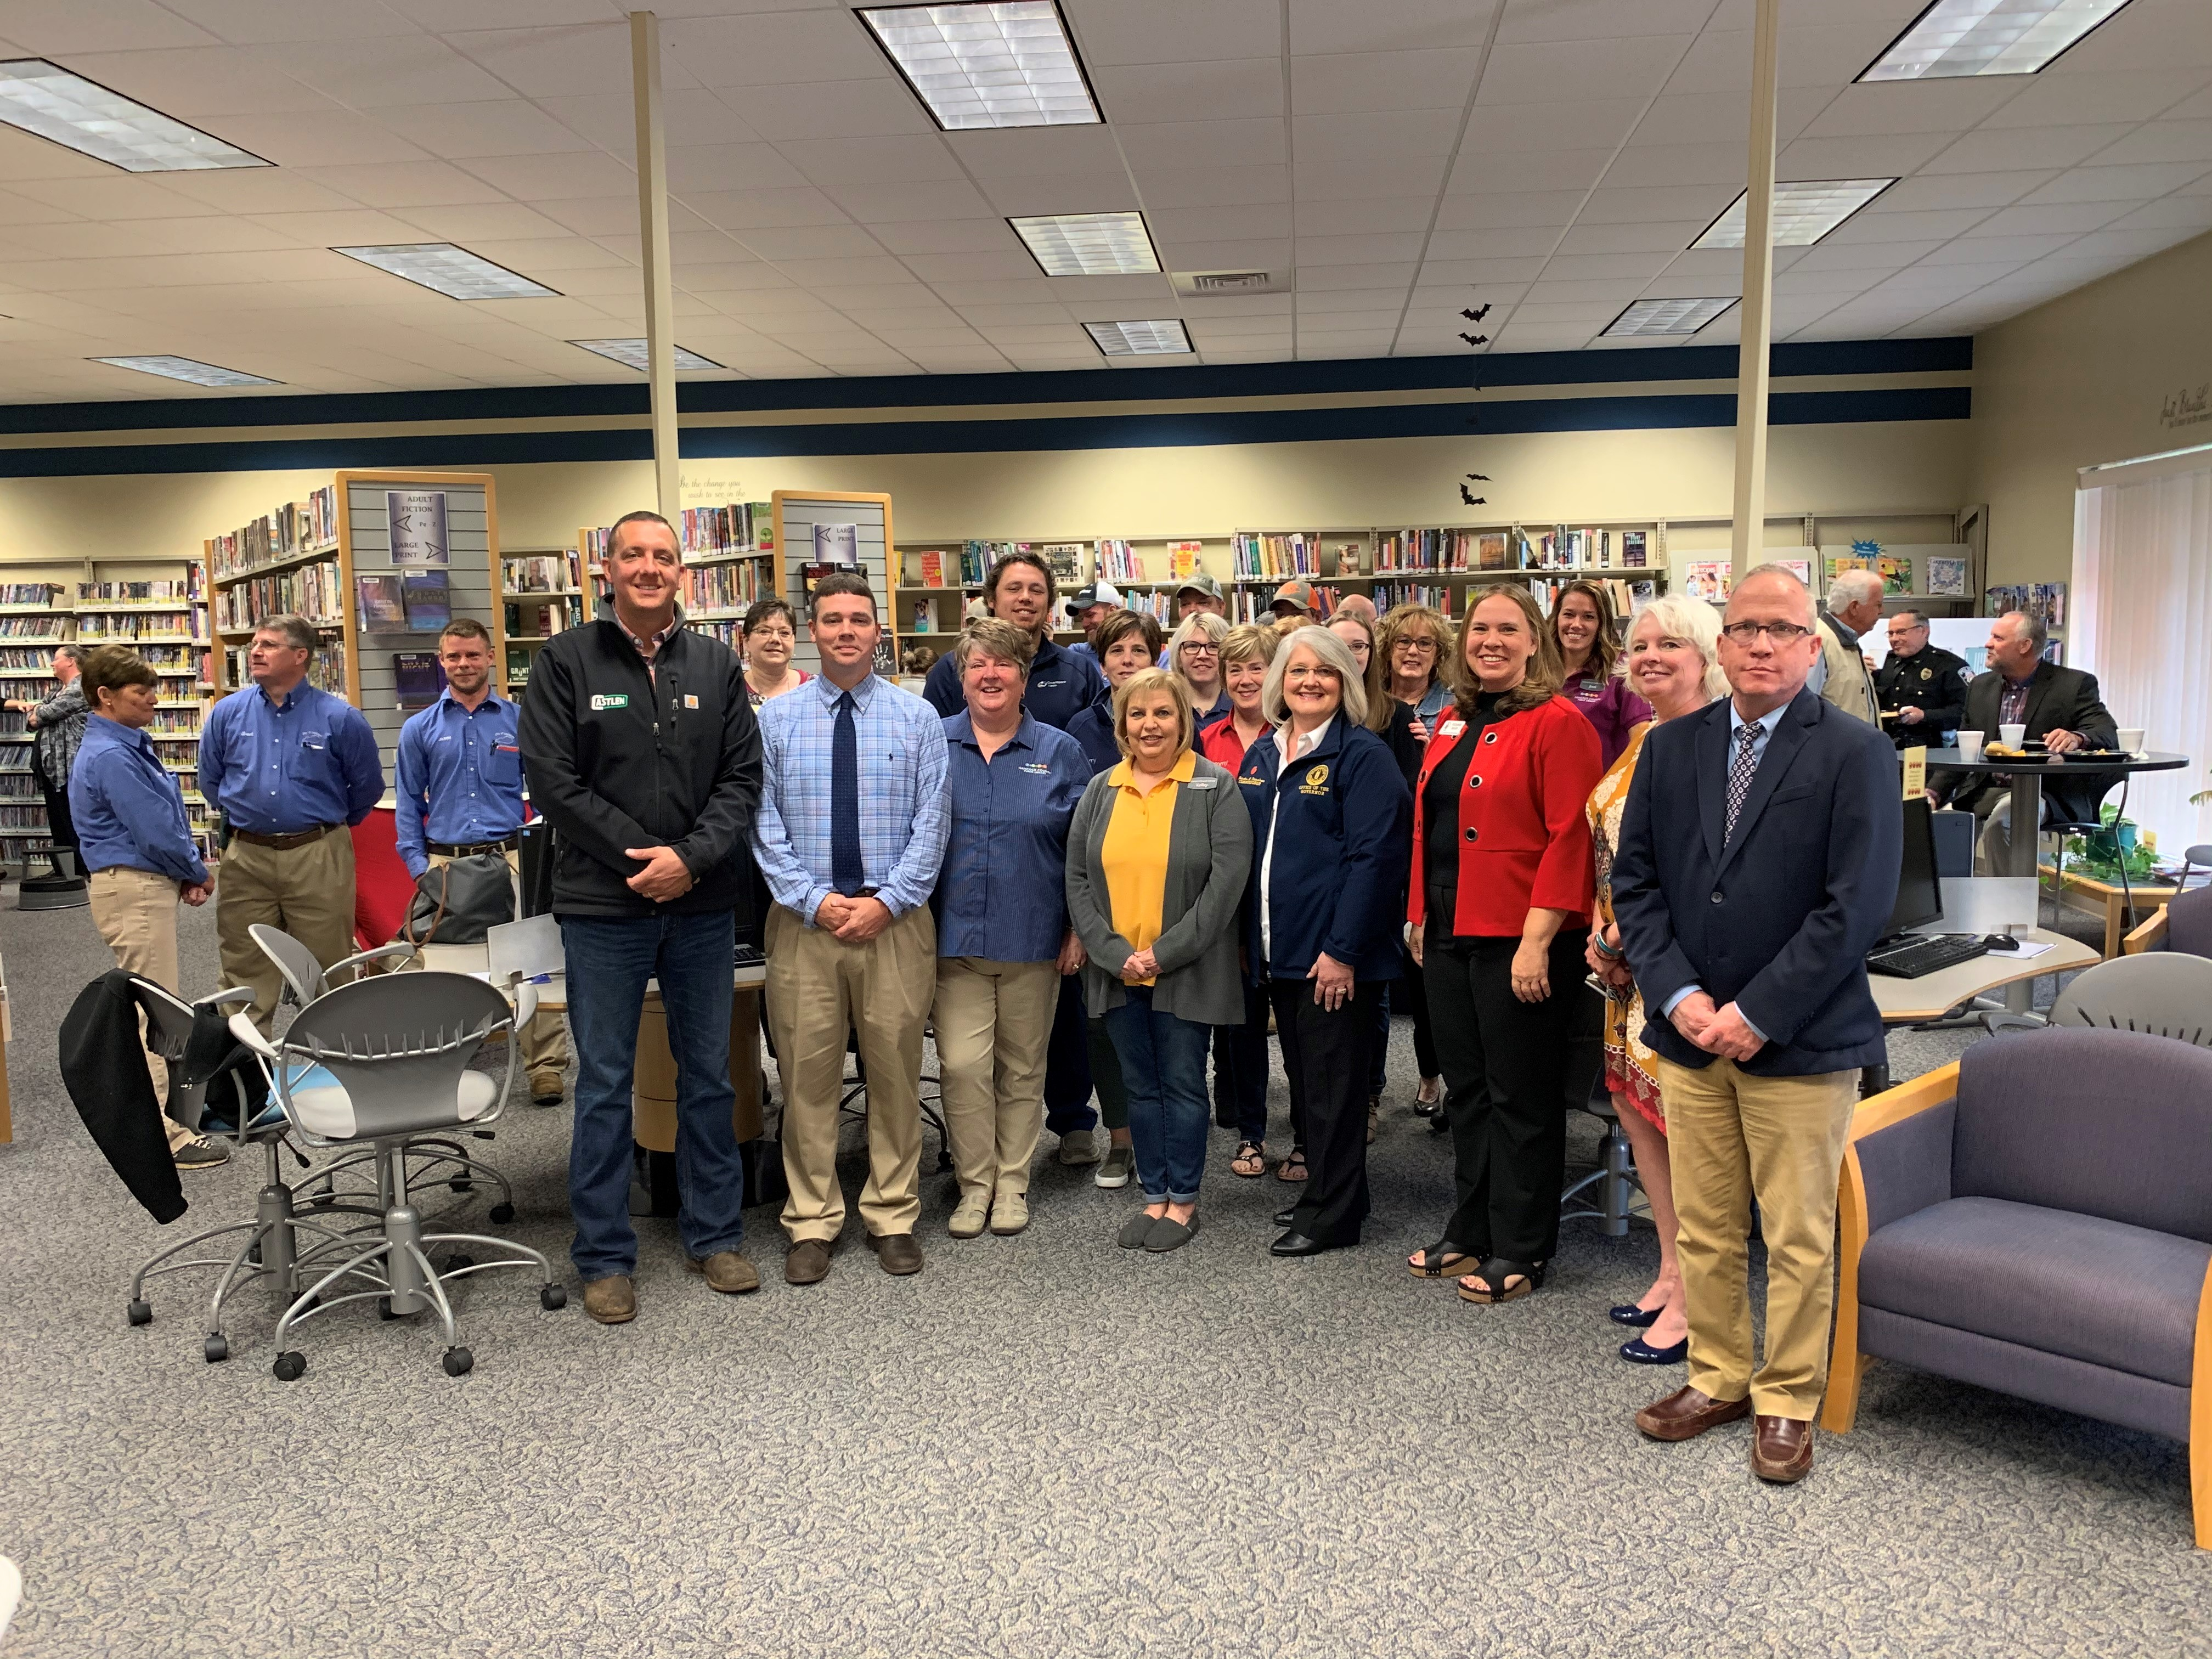 City of Lewisport Receives $500,000 CDBG Grant for Library Construction Project